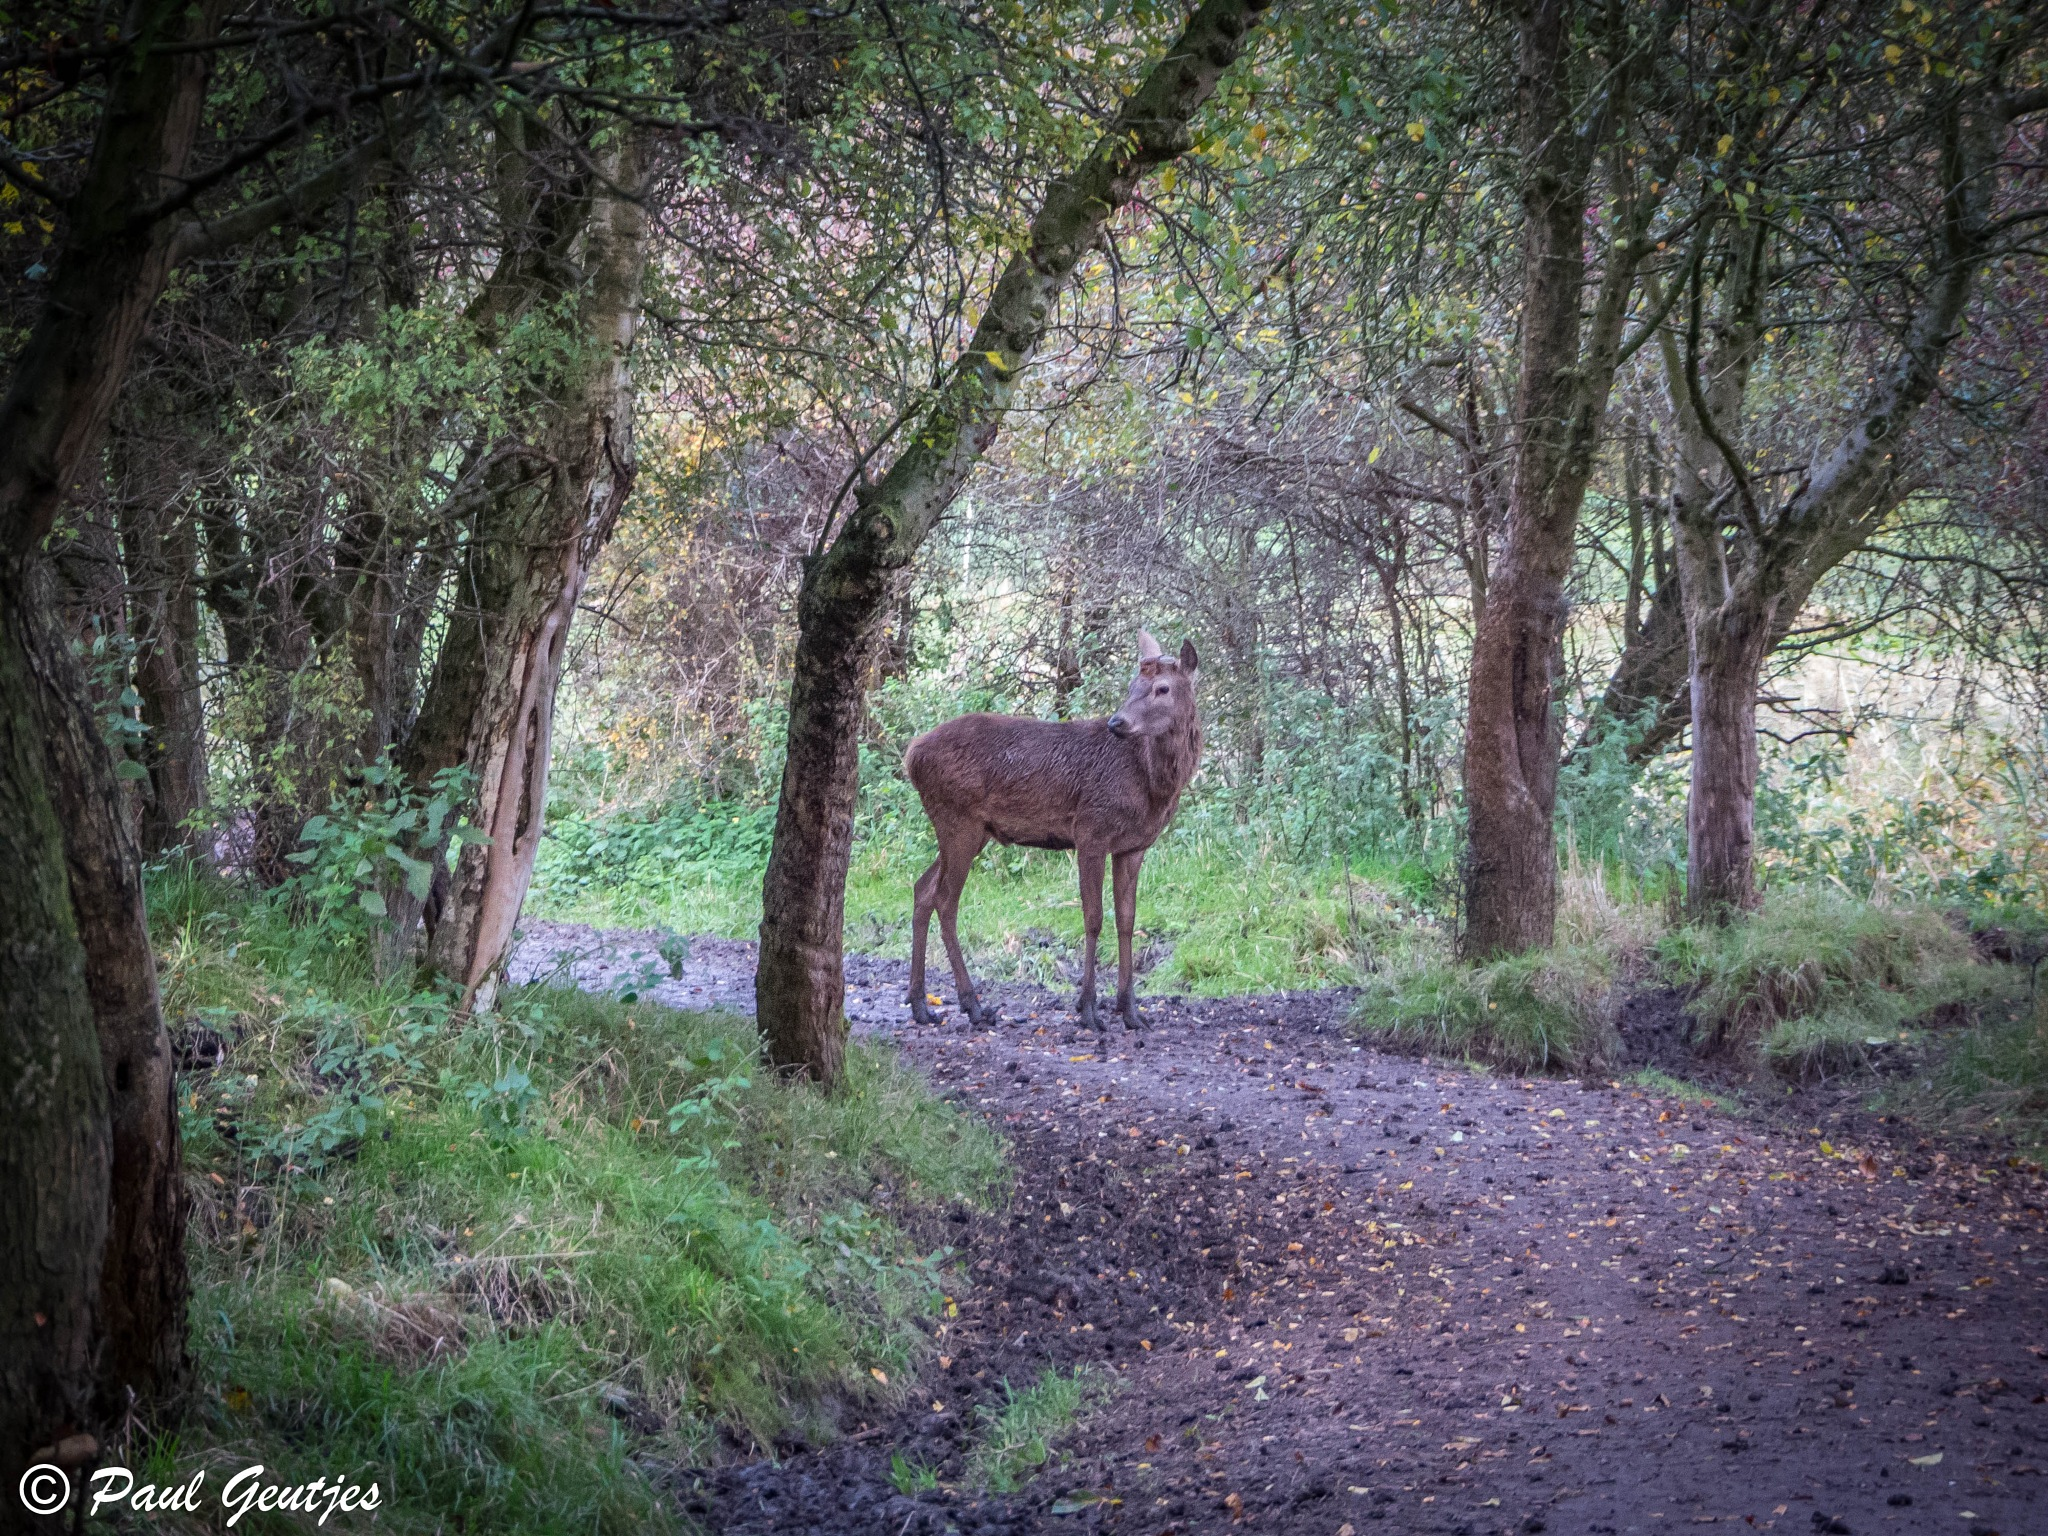 Deer in the forest by Paul Geutjes